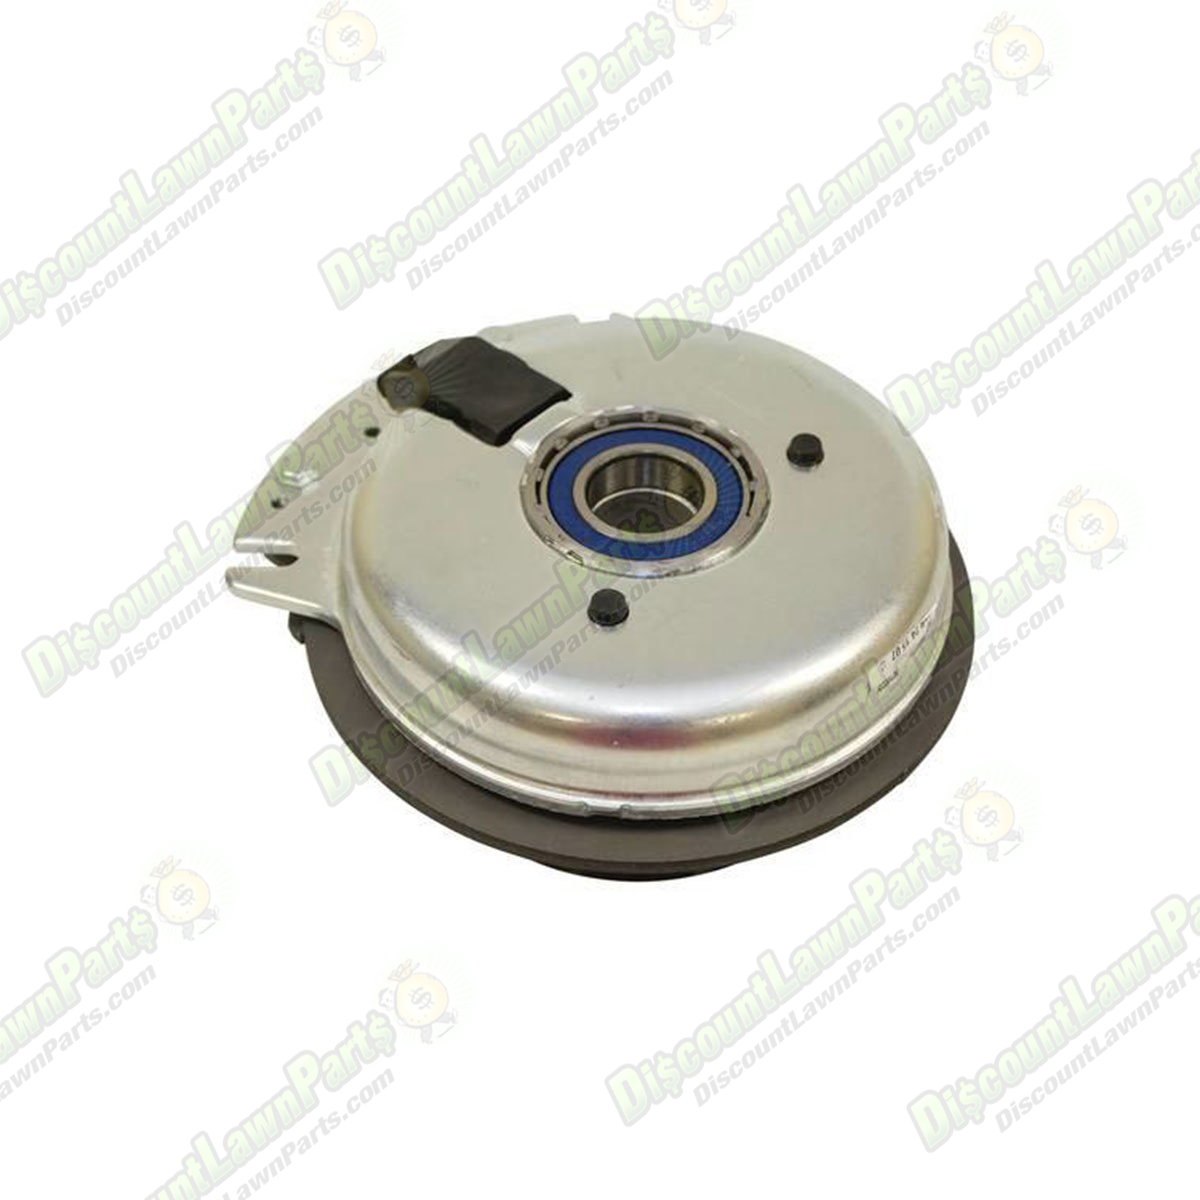 Case 226 Garden Tractor Pto Clutch : Electric pto clutch warner discountlawnparts